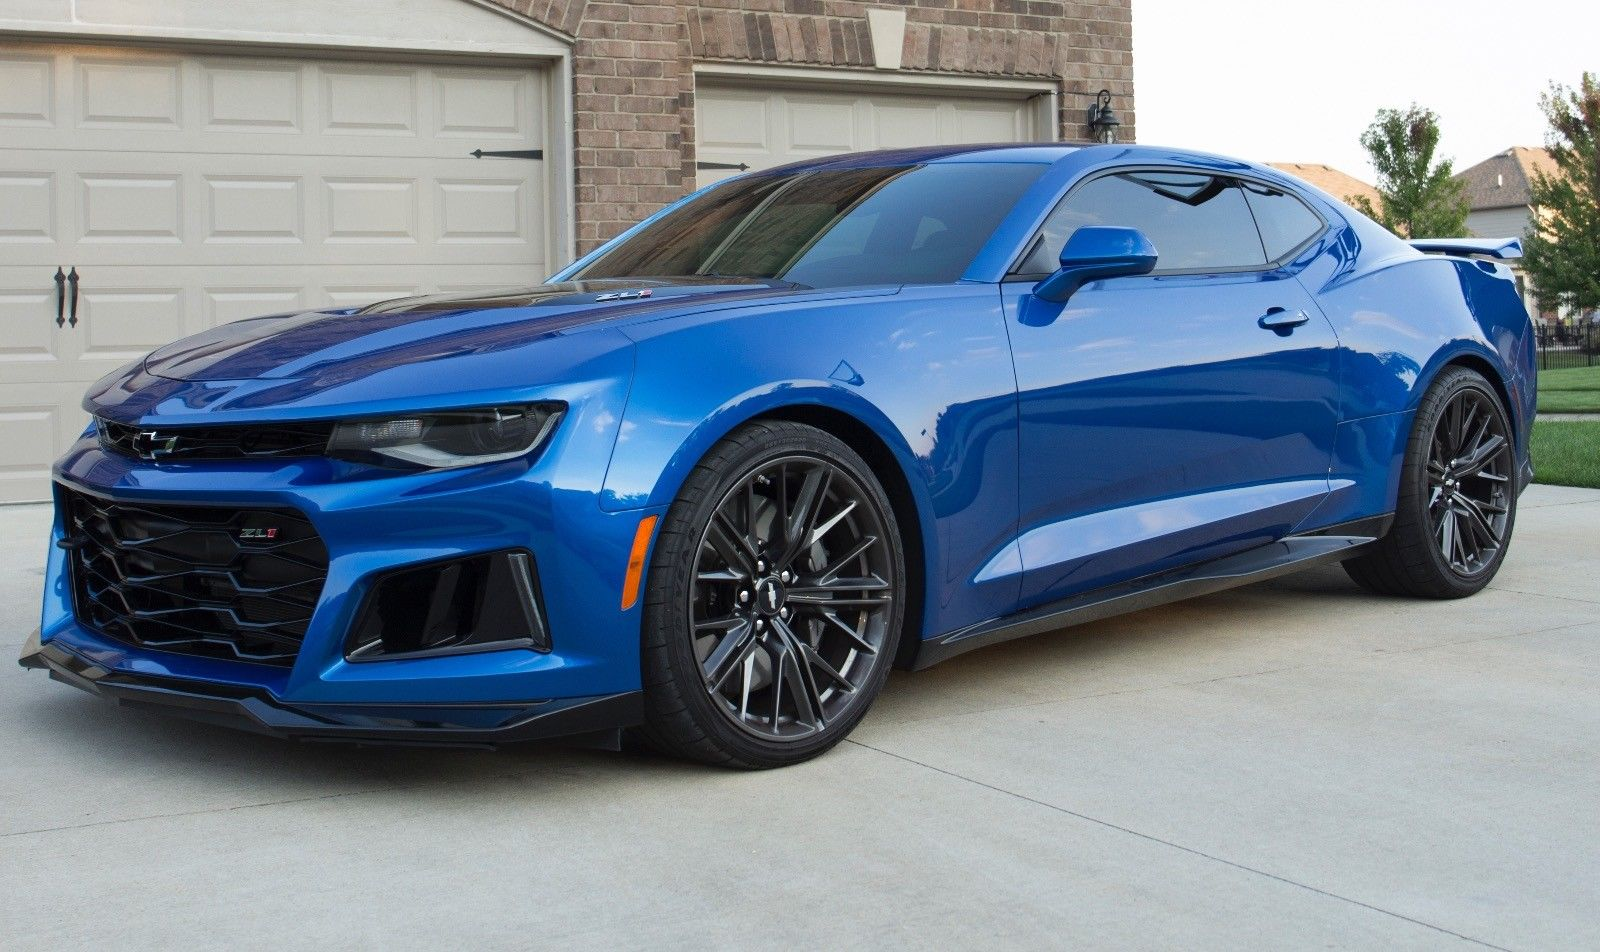 Awesome 2017 Chevrolet Camaro Zl1 2017 Camaro Zl1 Hyper Blue Low Miles 1 Owner Best Deal On